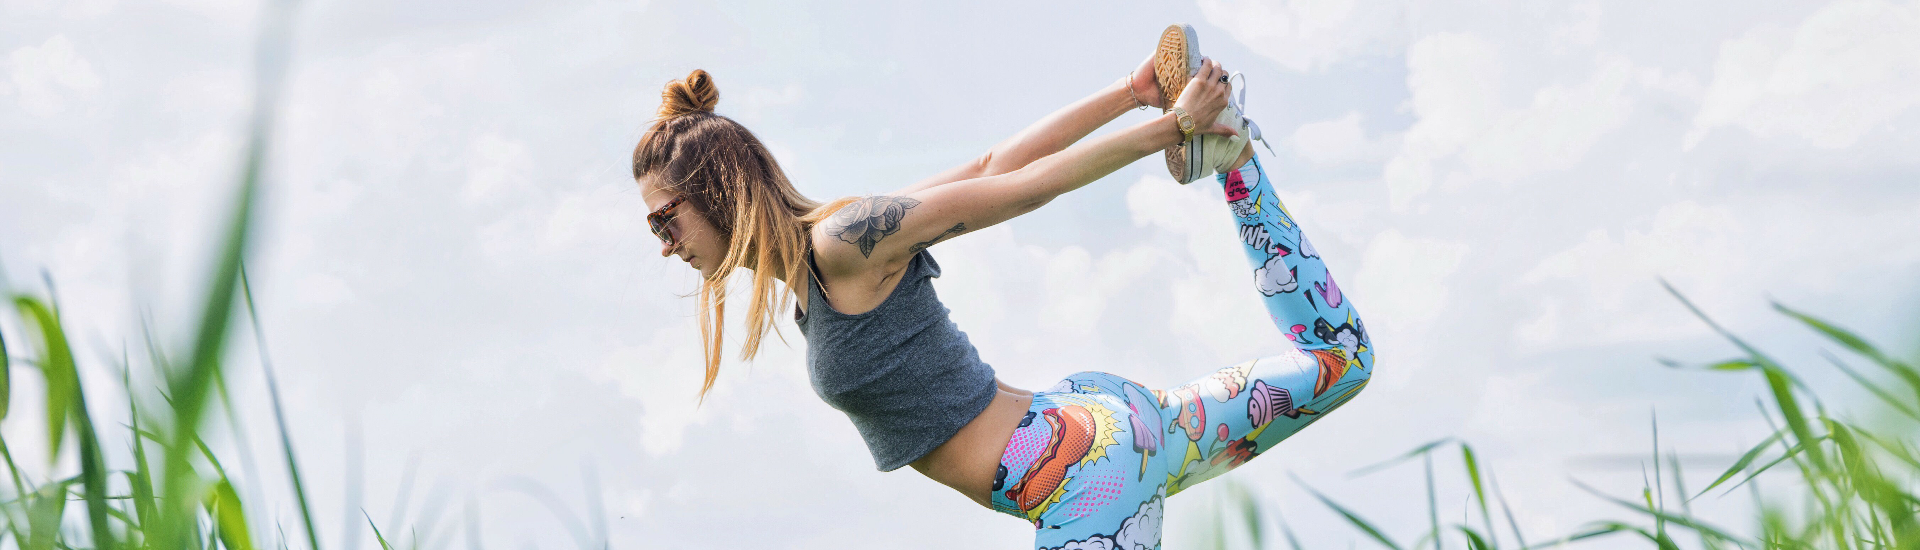 5 Tips on How to Build a Consistent Weight-loss Momentum